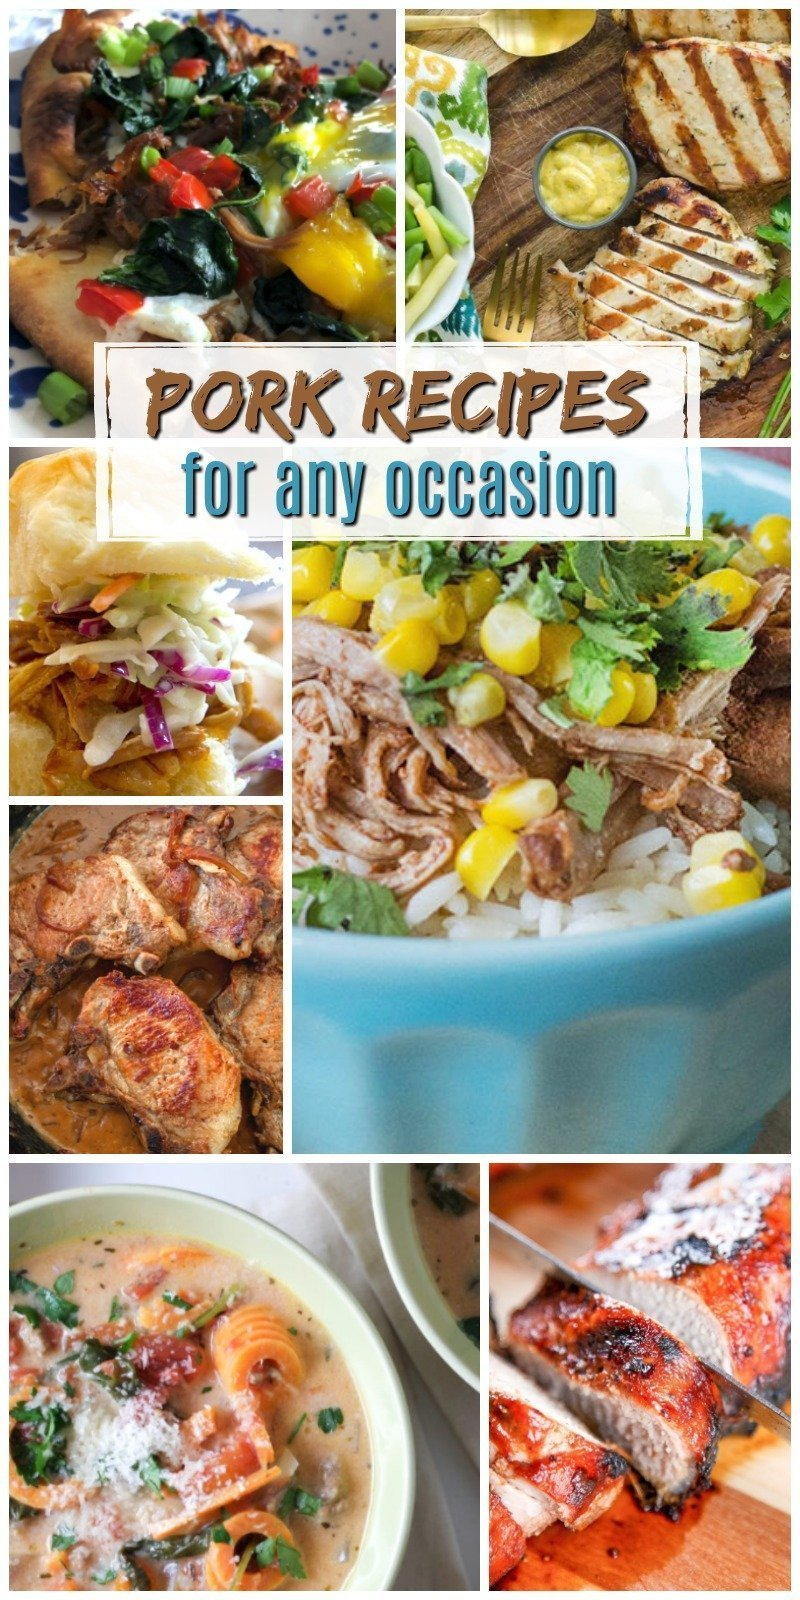 Looking for a good pork recipe to enjoy with the family this evening? Check out these 12 Pork Recipes for any Occasion. You're sure to find an easy meal option using pork within this roundup.